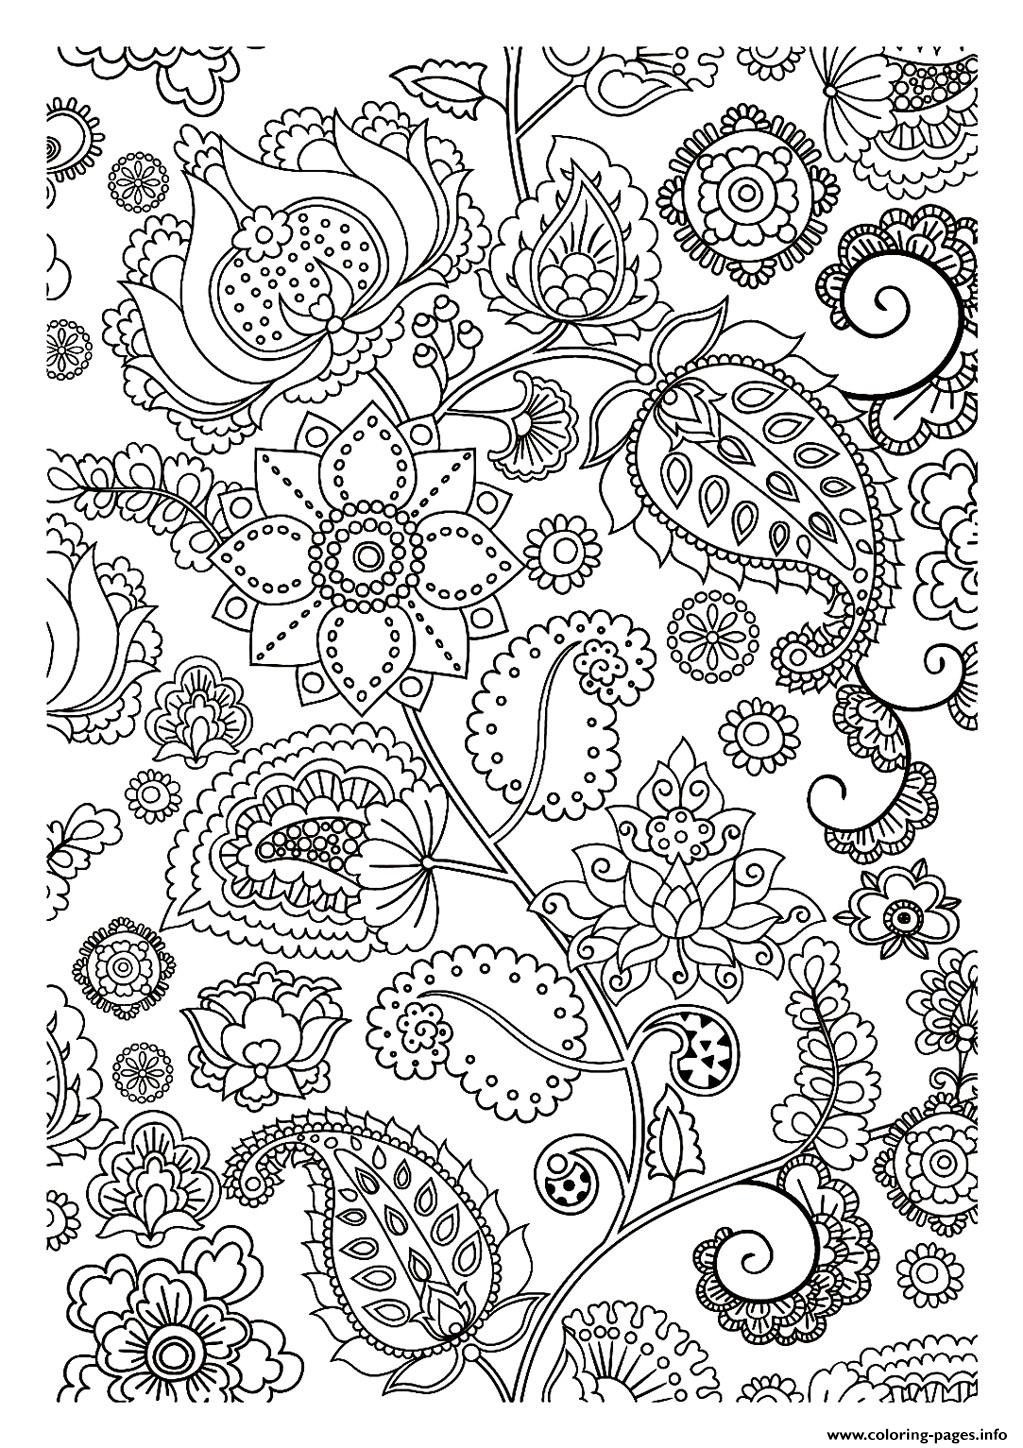 Adult flowers zen coloring pages printable - Dessin vegetation ...